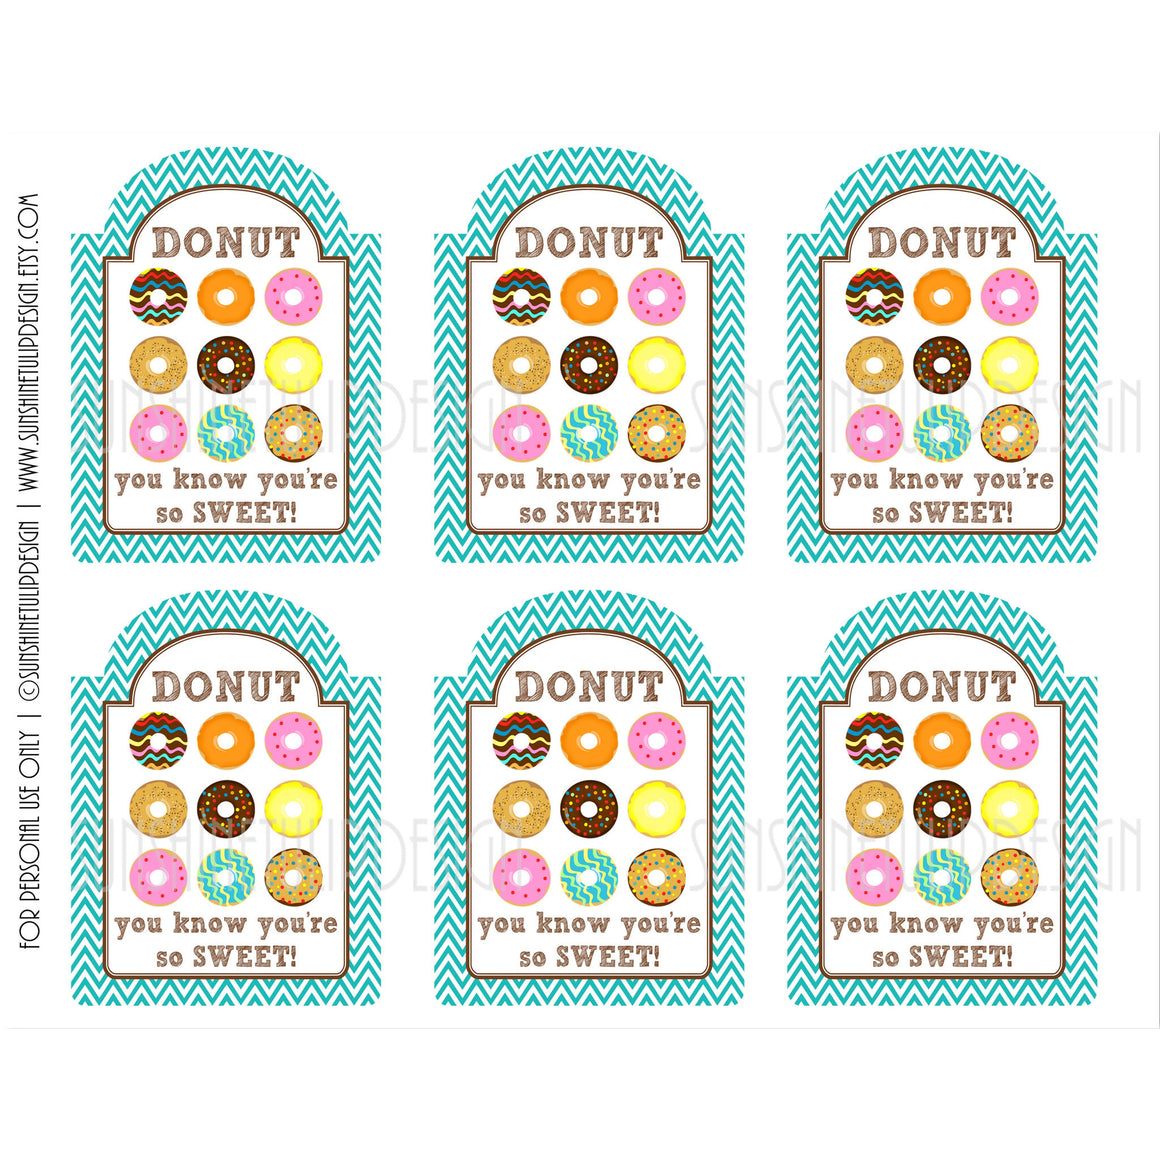 Printable Teacher Appreciation Tags, Friendship Tags, DONUT You know You're Sweet Gift Tags by SUNSHINETULIPDESIGN - Sunshinetulipdesign